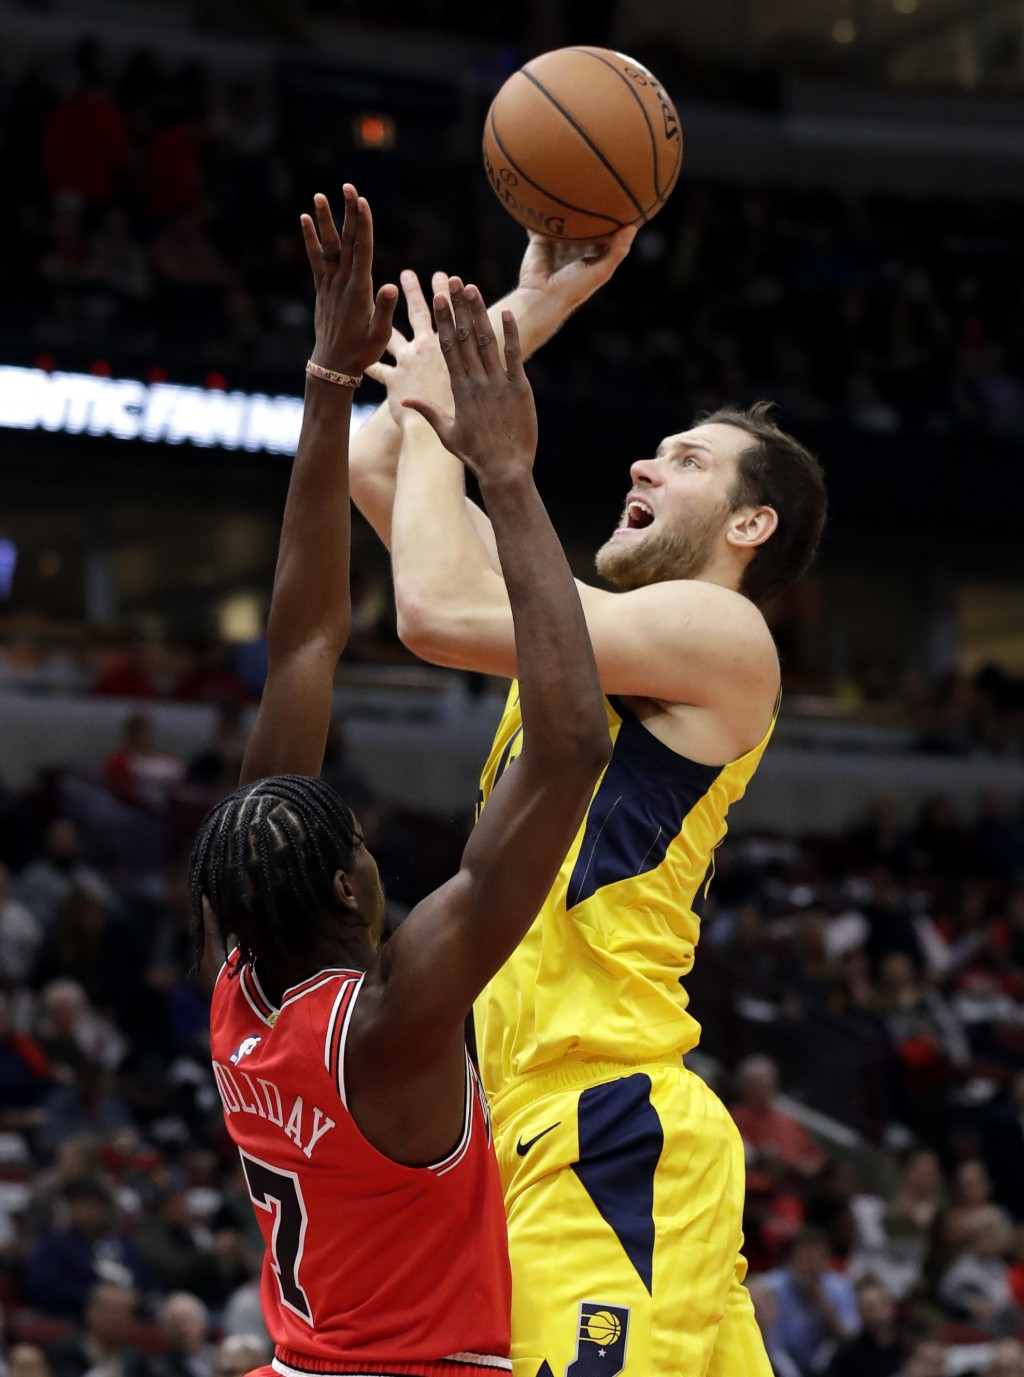 Indiana Pacers forward Bojan Bogdanovic, right, shoots against Chicago Bulls guard Justin Holiday during the first half of an NBA basketball game Frid